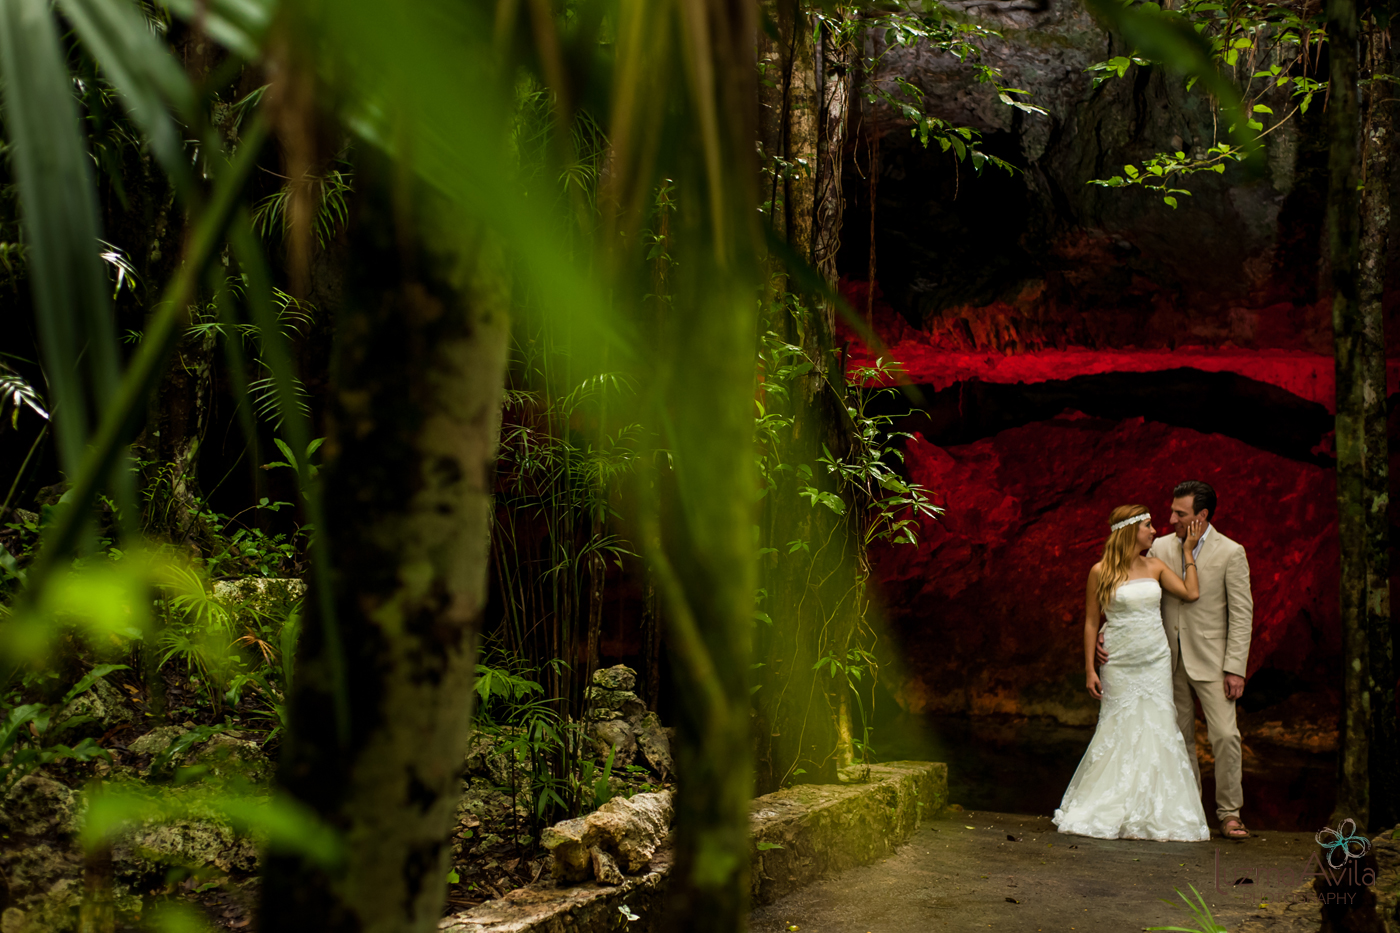 cenote photography